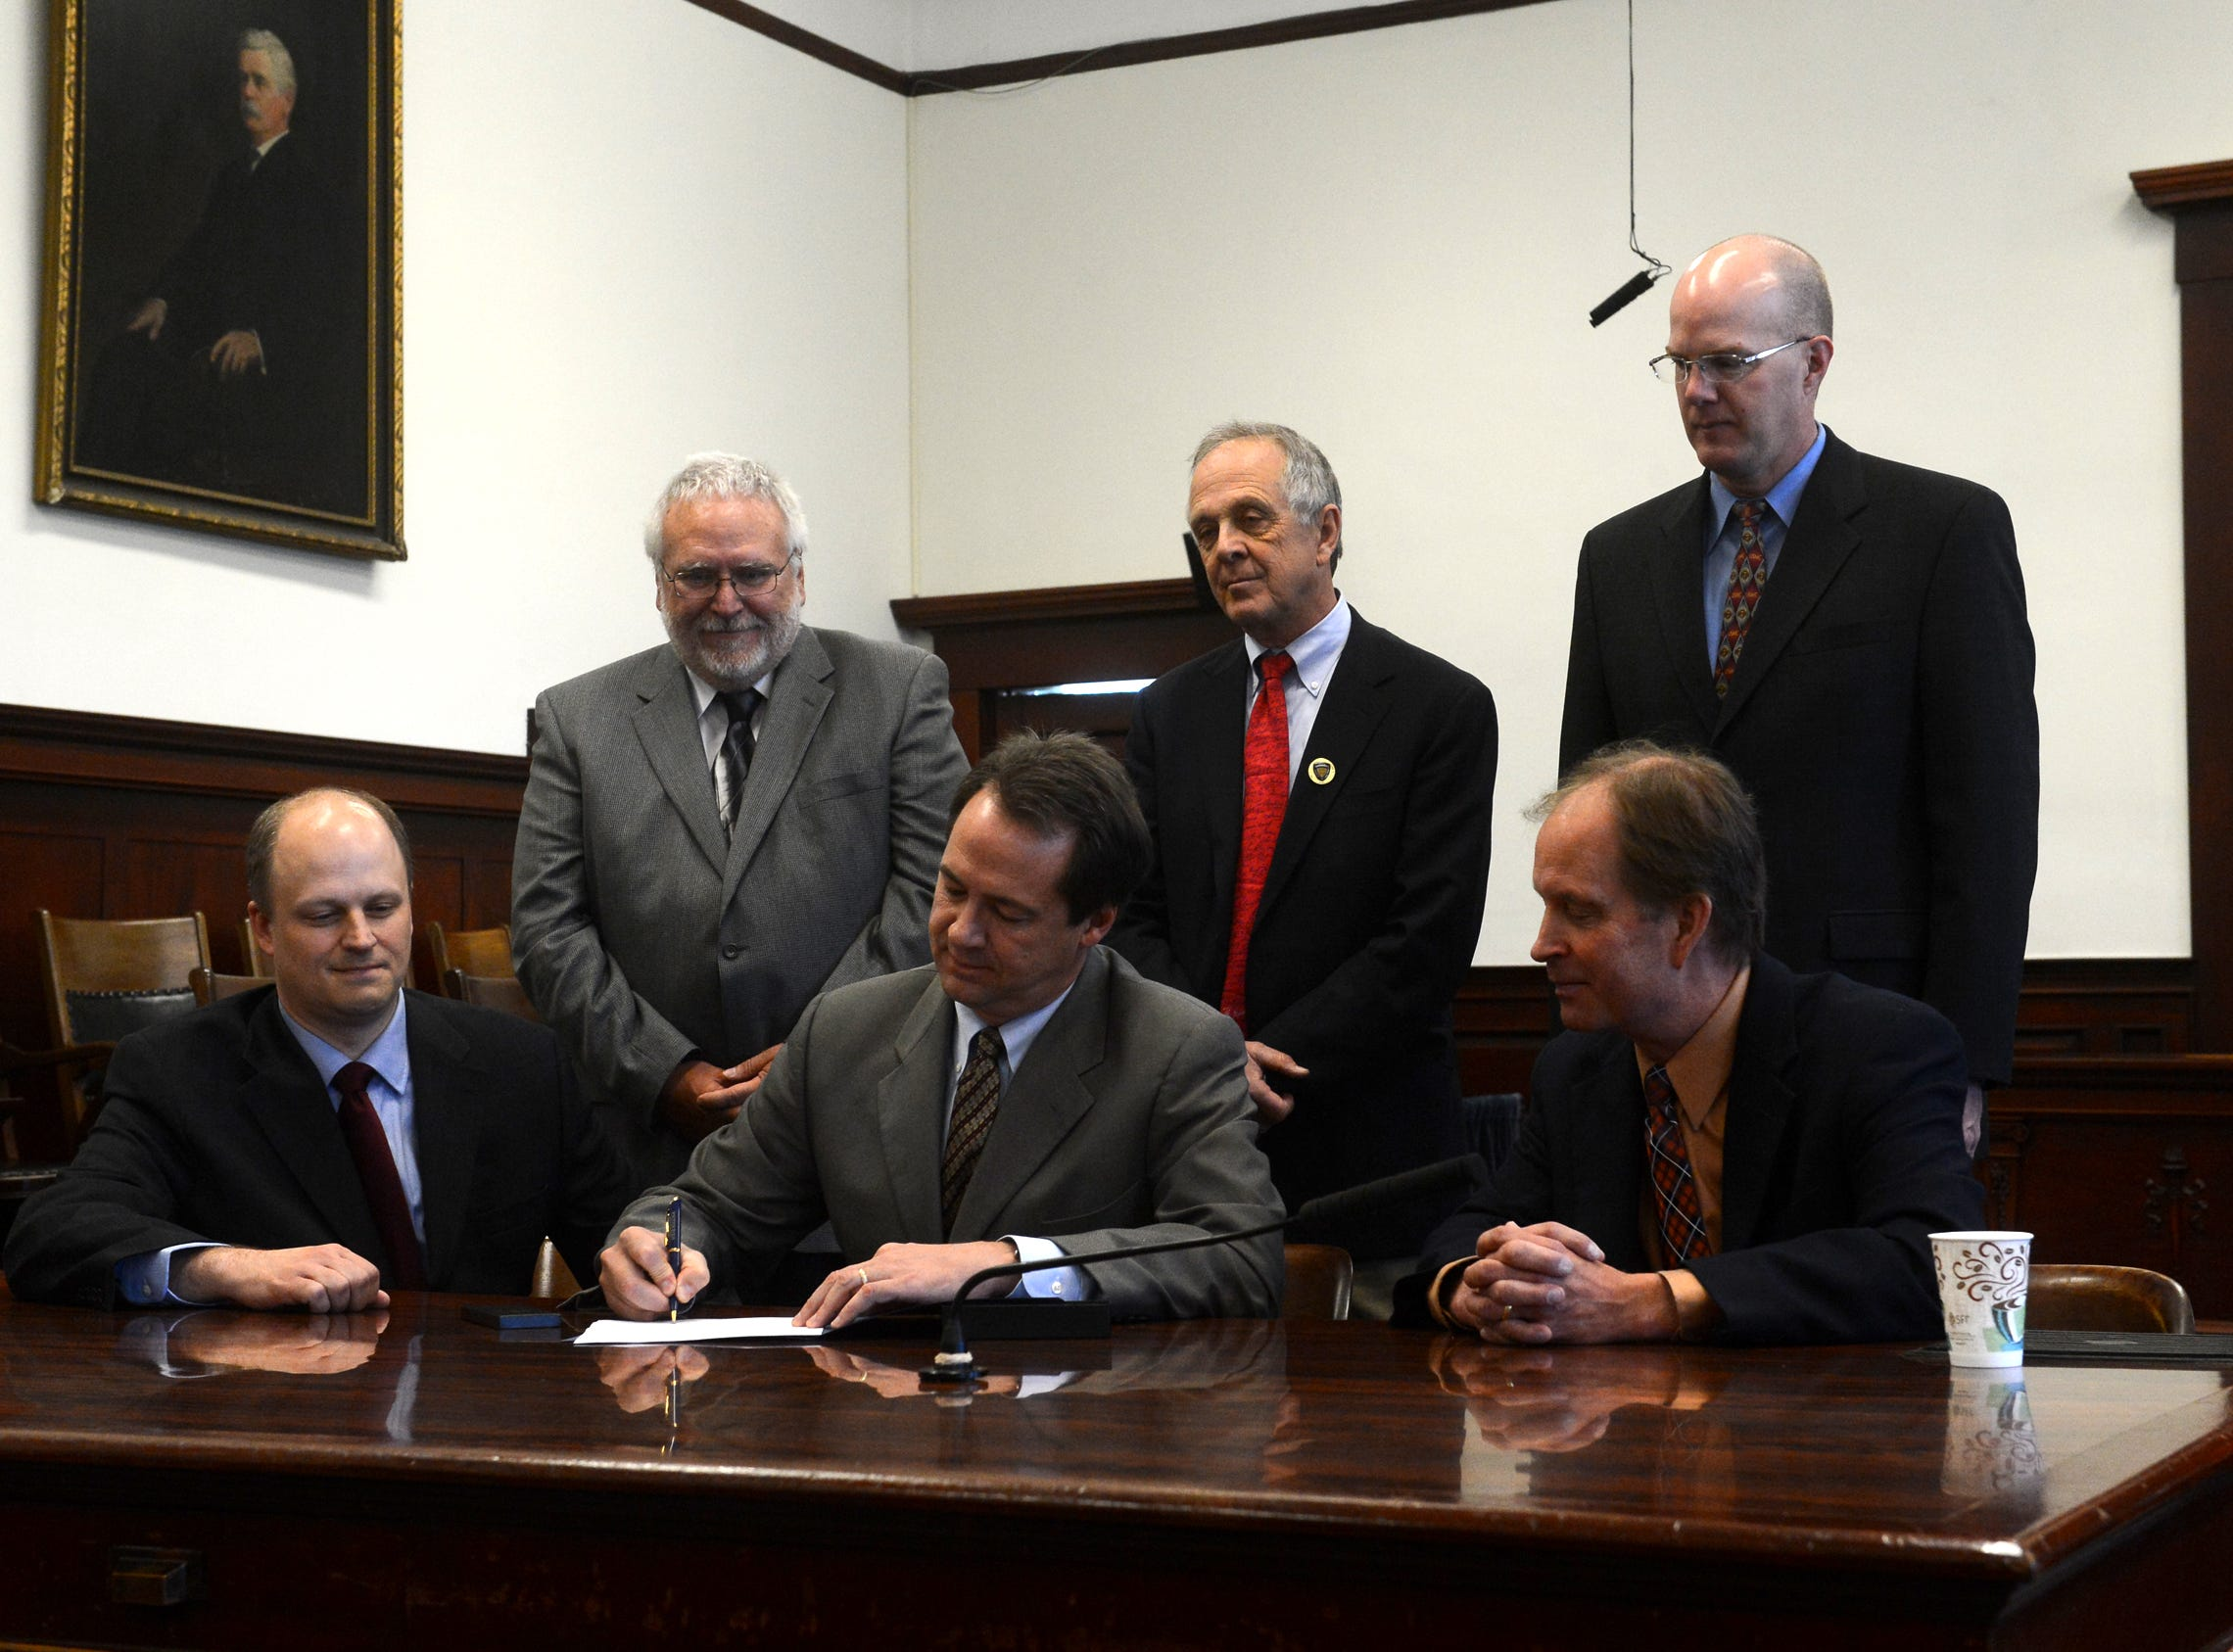 Gov. Steve Bullock signs Senate Bill 160 into law at the Cascade County Courthouse. Govenor Steve Bullock signs Senate Bill 160 into law on Tuesday morning at the Cascade County Courthouse.  Cascade County Attorney John Parker, left, and the bill sponsor Sen. Mitch Tropila, right, look on.  Standing from left: Leo Gallagher, county attorney, Lewis and Clark County; ??Larry Epstein, Glacier County??; Bill Fullbright, county attorney for Ravalli County. TRIBUNE PHOTO/RION SANDERS